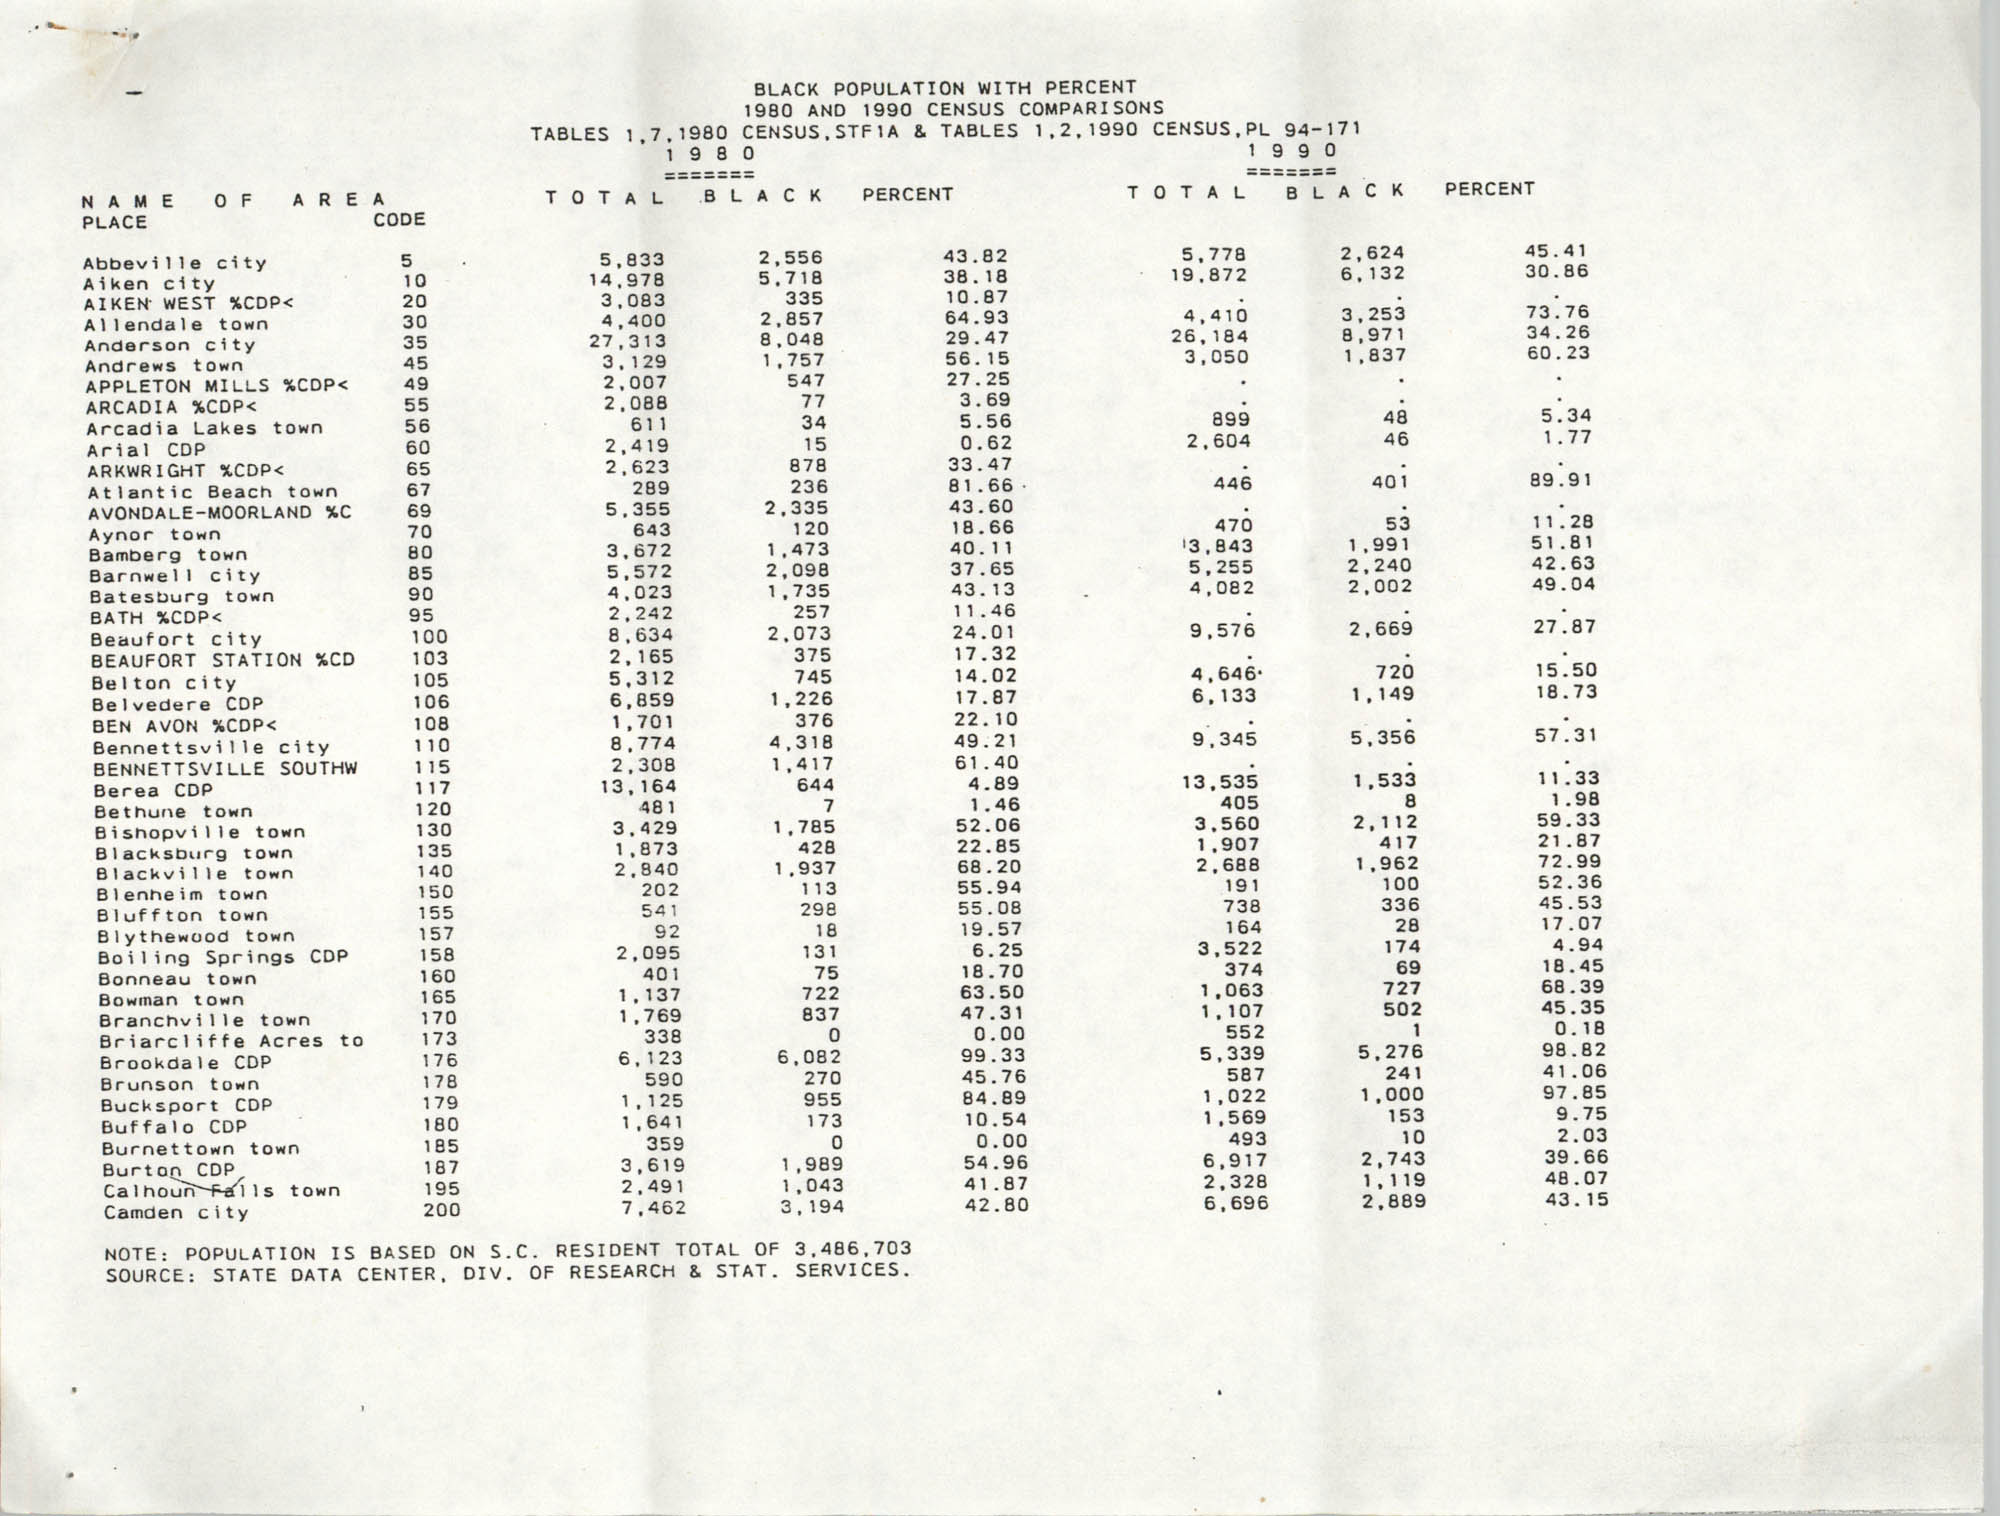 Black Population with Percent, 1980 and 1990 Census Comparison, Page 2